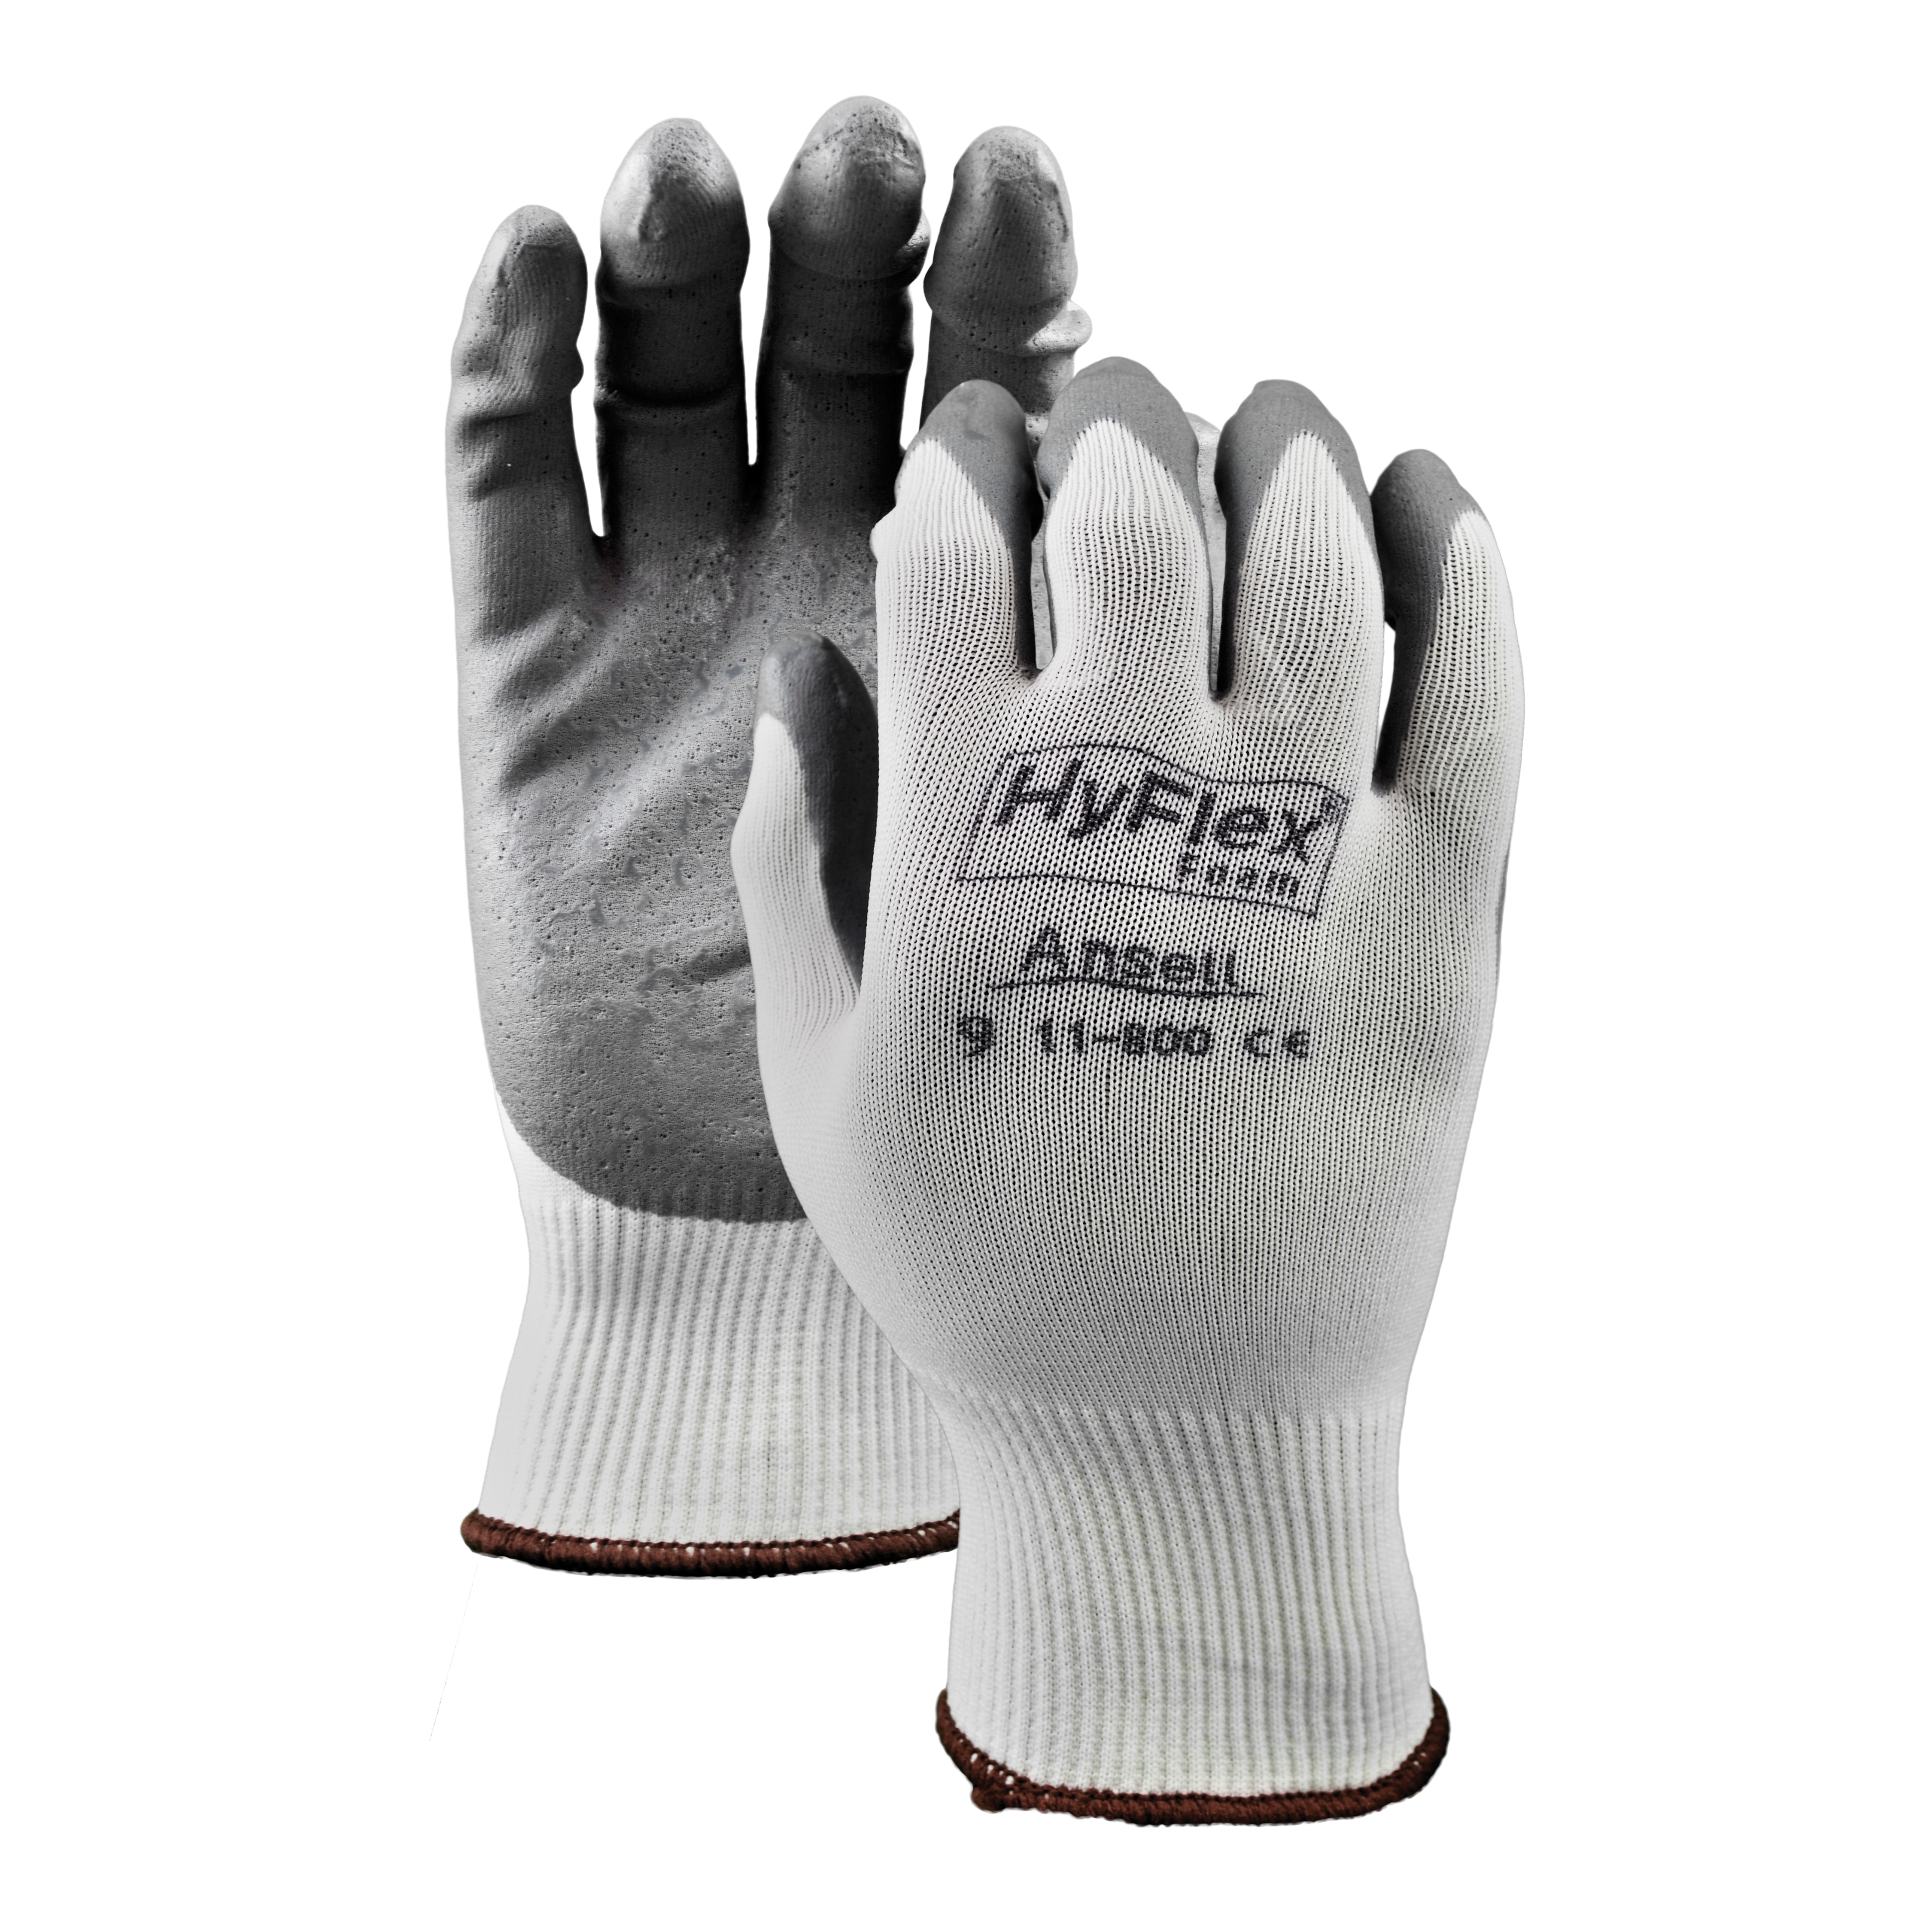 Ansell HyFlex® 11800-09 Light Duty General Purpose Gloves, Coated/Multi-Purpose, SZ 9, Foam Nitrile Palm, Nylon Knit Shell, Gray/White, Knit Wrist Cuff, Foam Nitrile Coating, Resists: Abrasion and Puncture, 15 ga Nylon Lining, Open Back